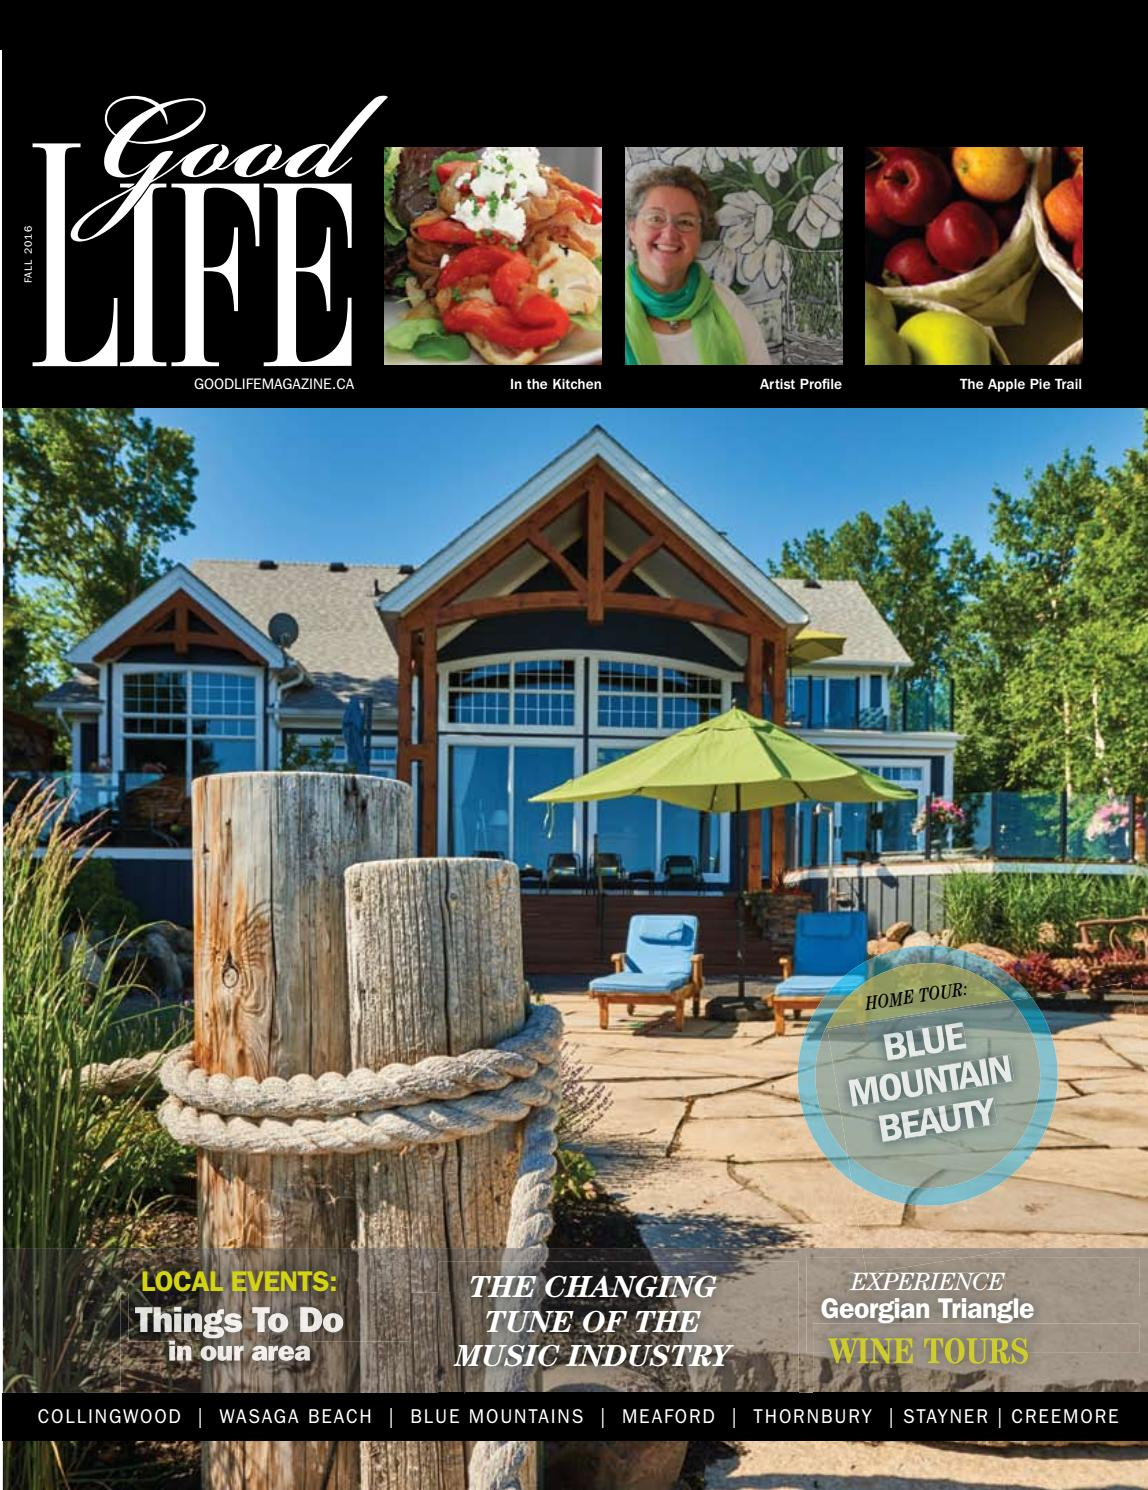 GOODLIFE GEORGIAN BAY FALL 2016 by GoodLife Magazine - Simcoe County ...